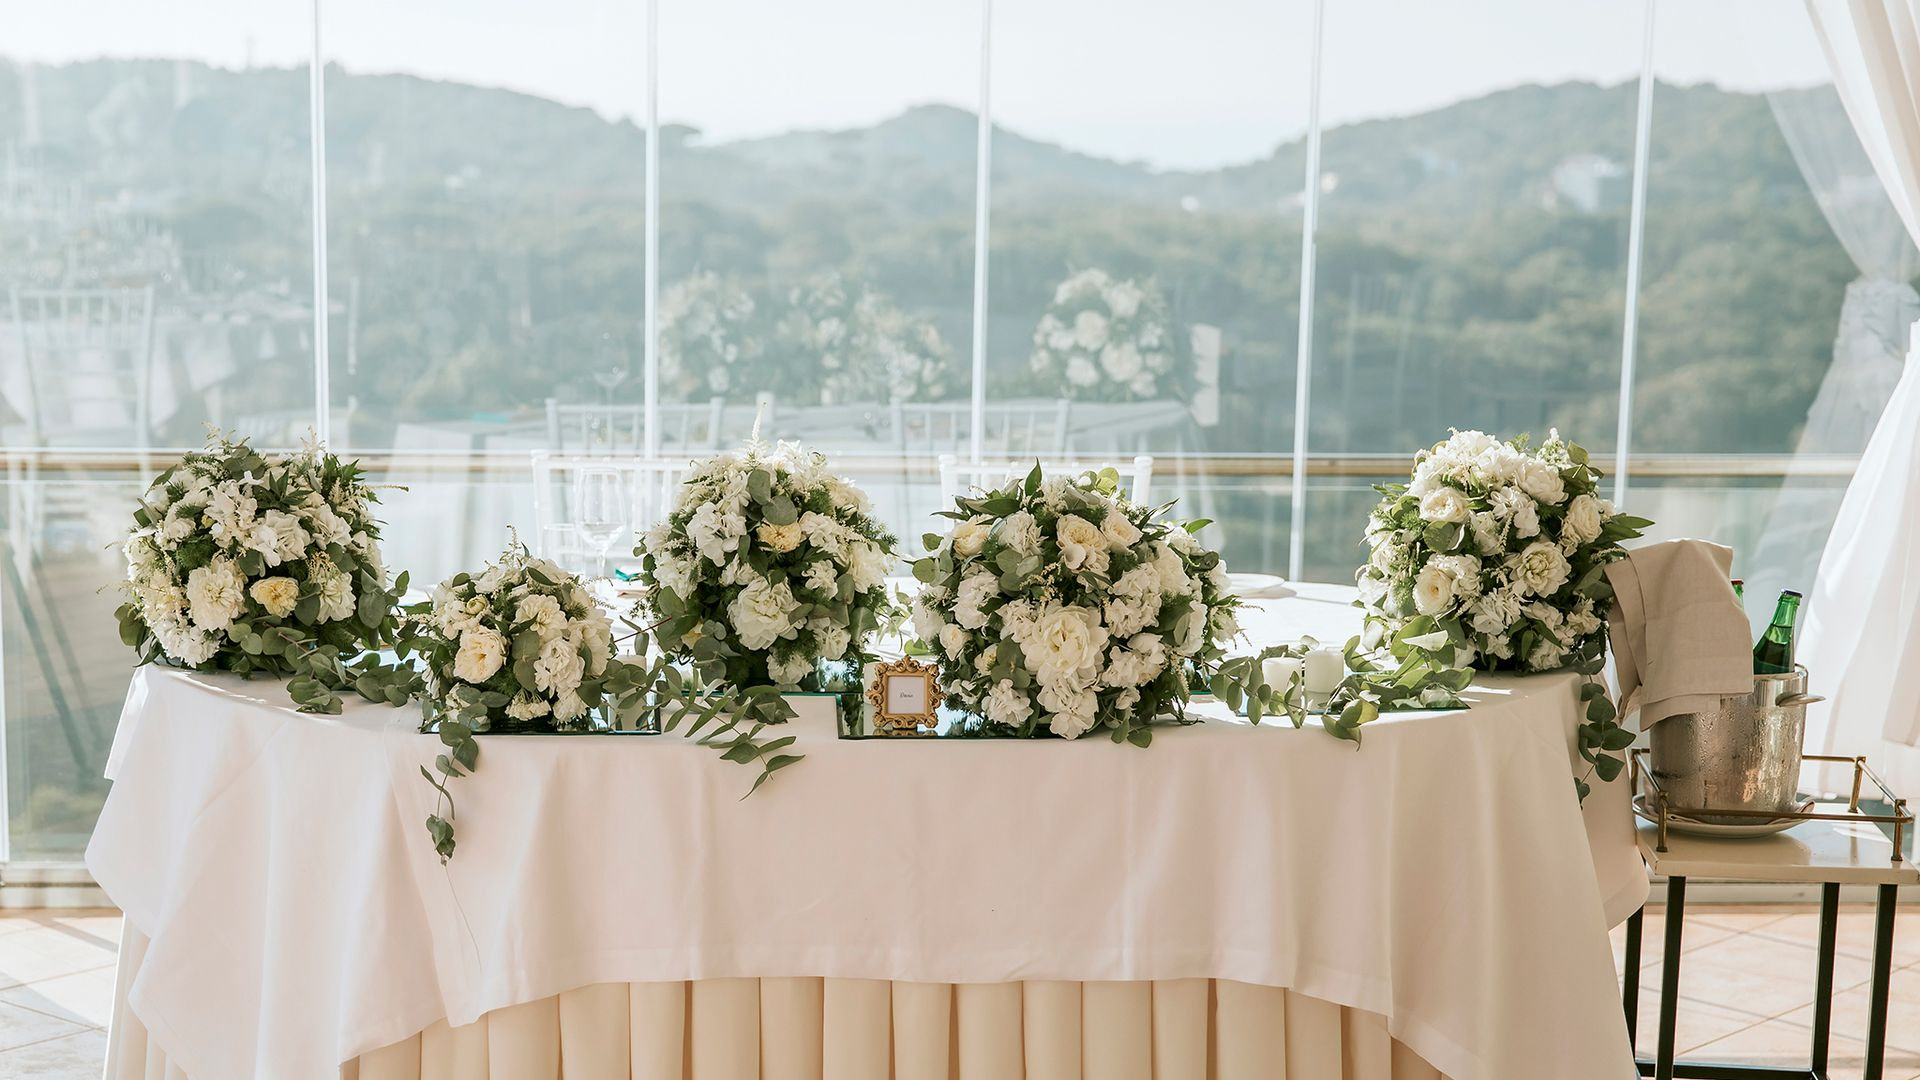 WeddTable